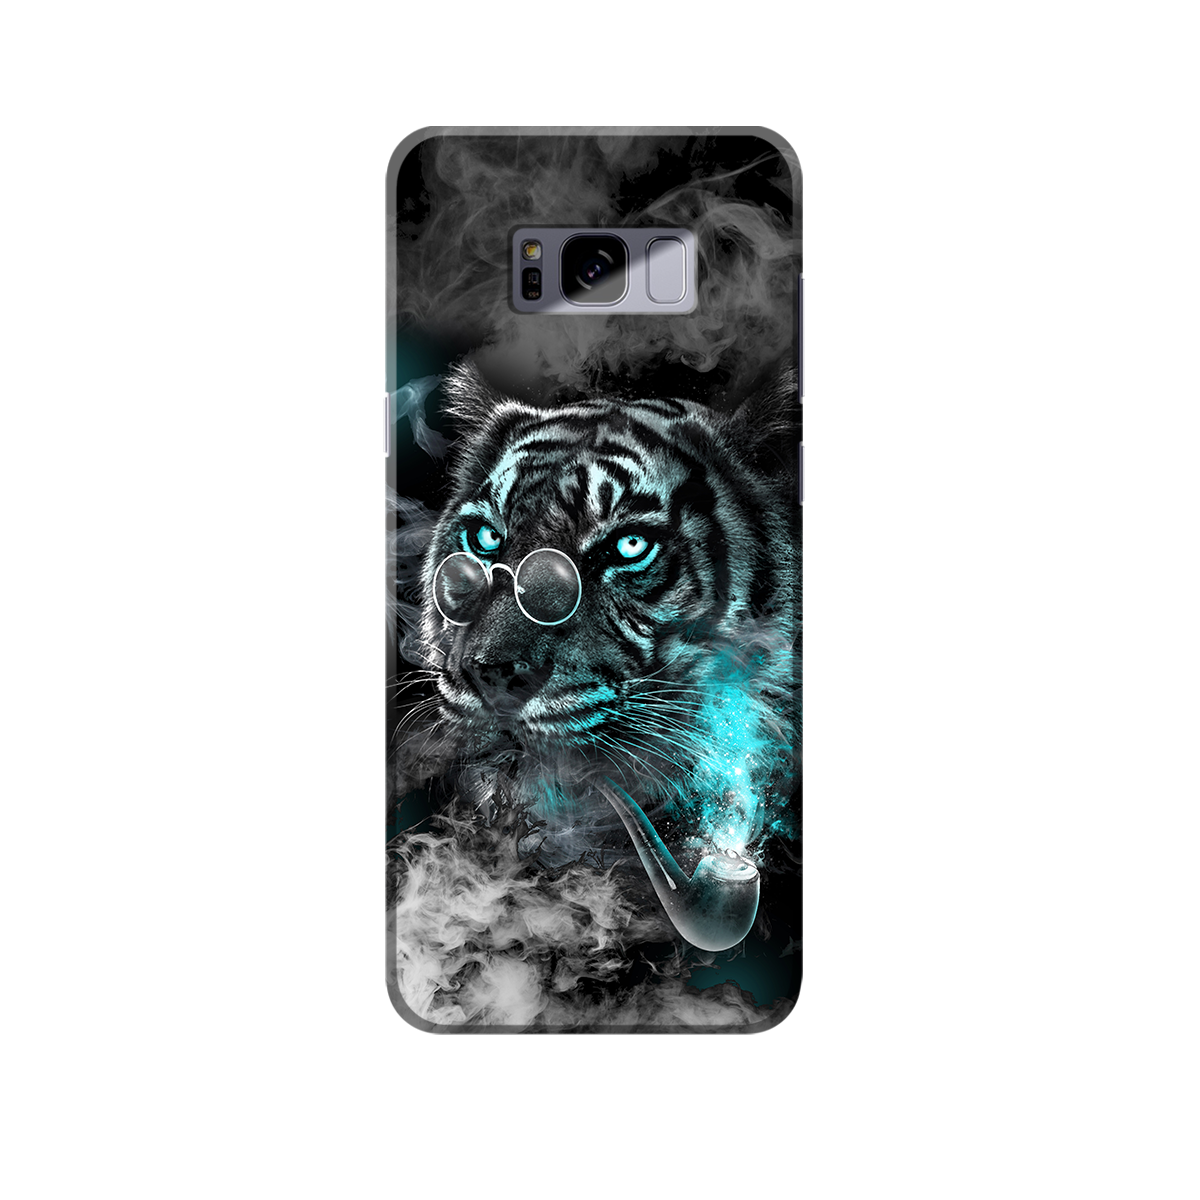 Gentle Tiger Phone Case Samsung S7